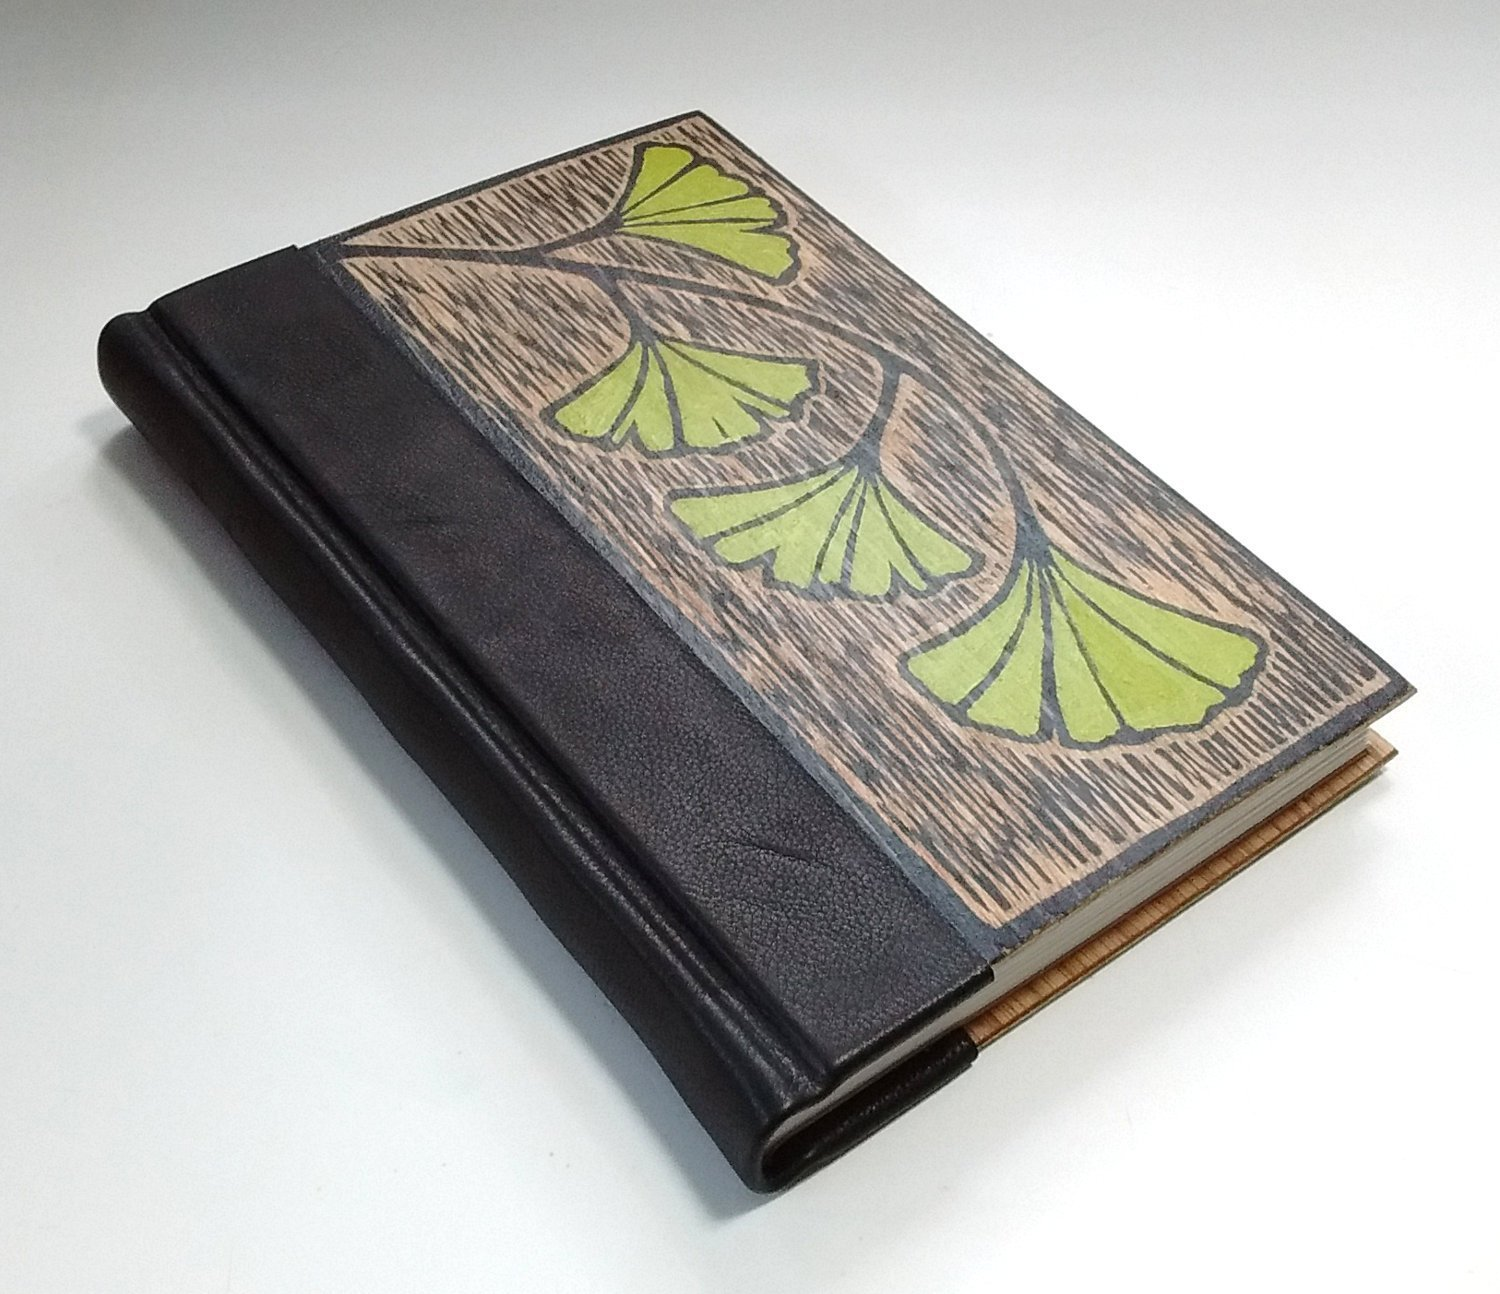 Hand-made book, bound in wood and leather, with original ginkgo art on cover